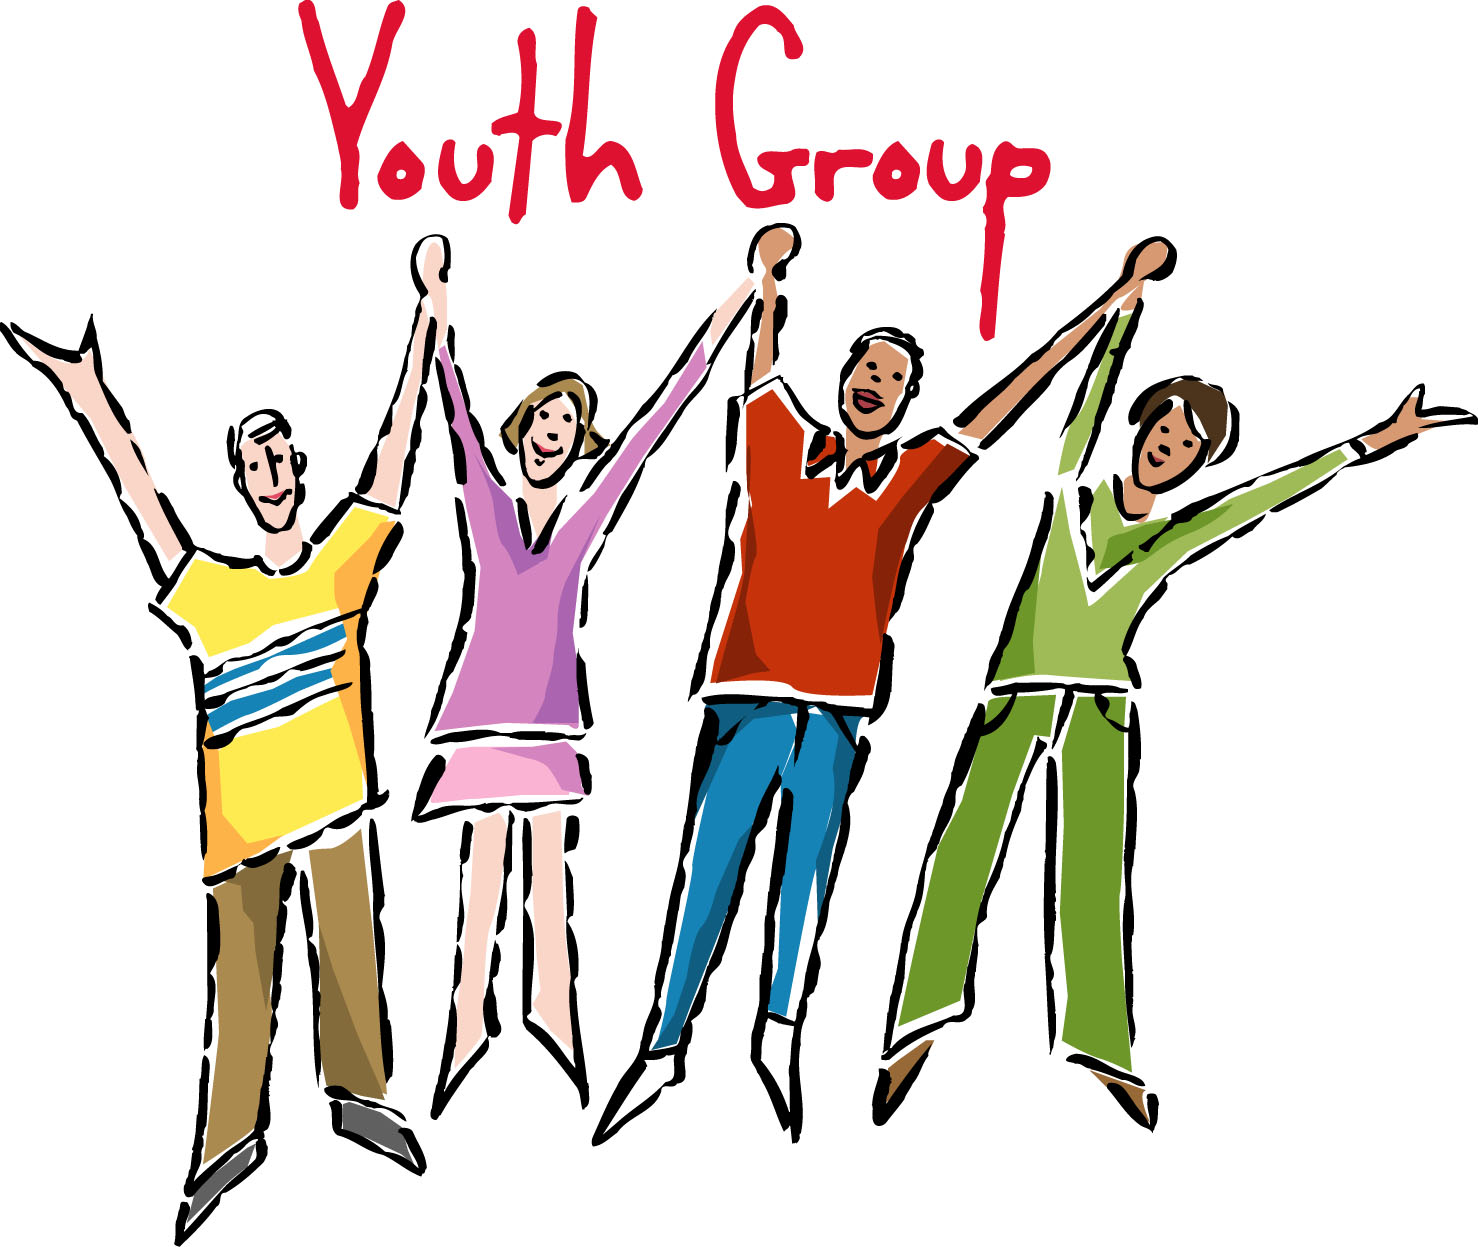 Organization clipart child youth worker. Pencil and in color